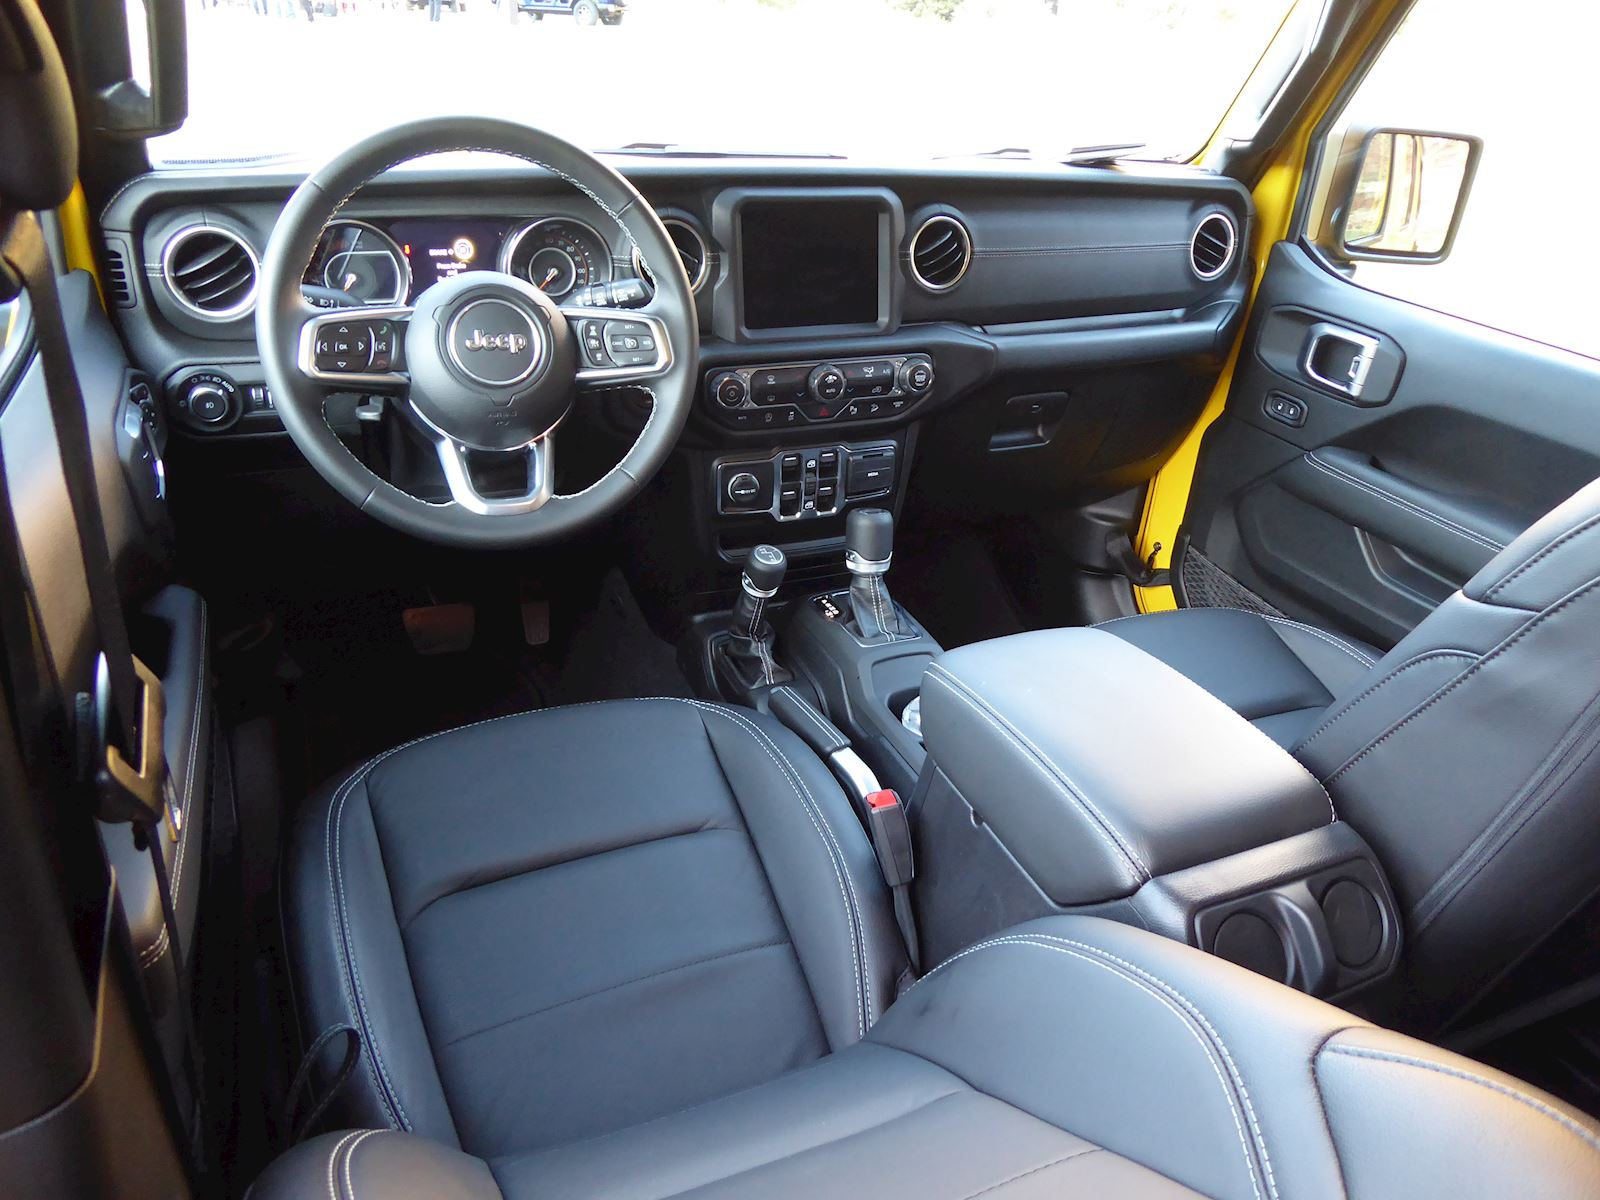 2020 Jeep Wrangler EcoDiesel dashboard front seats